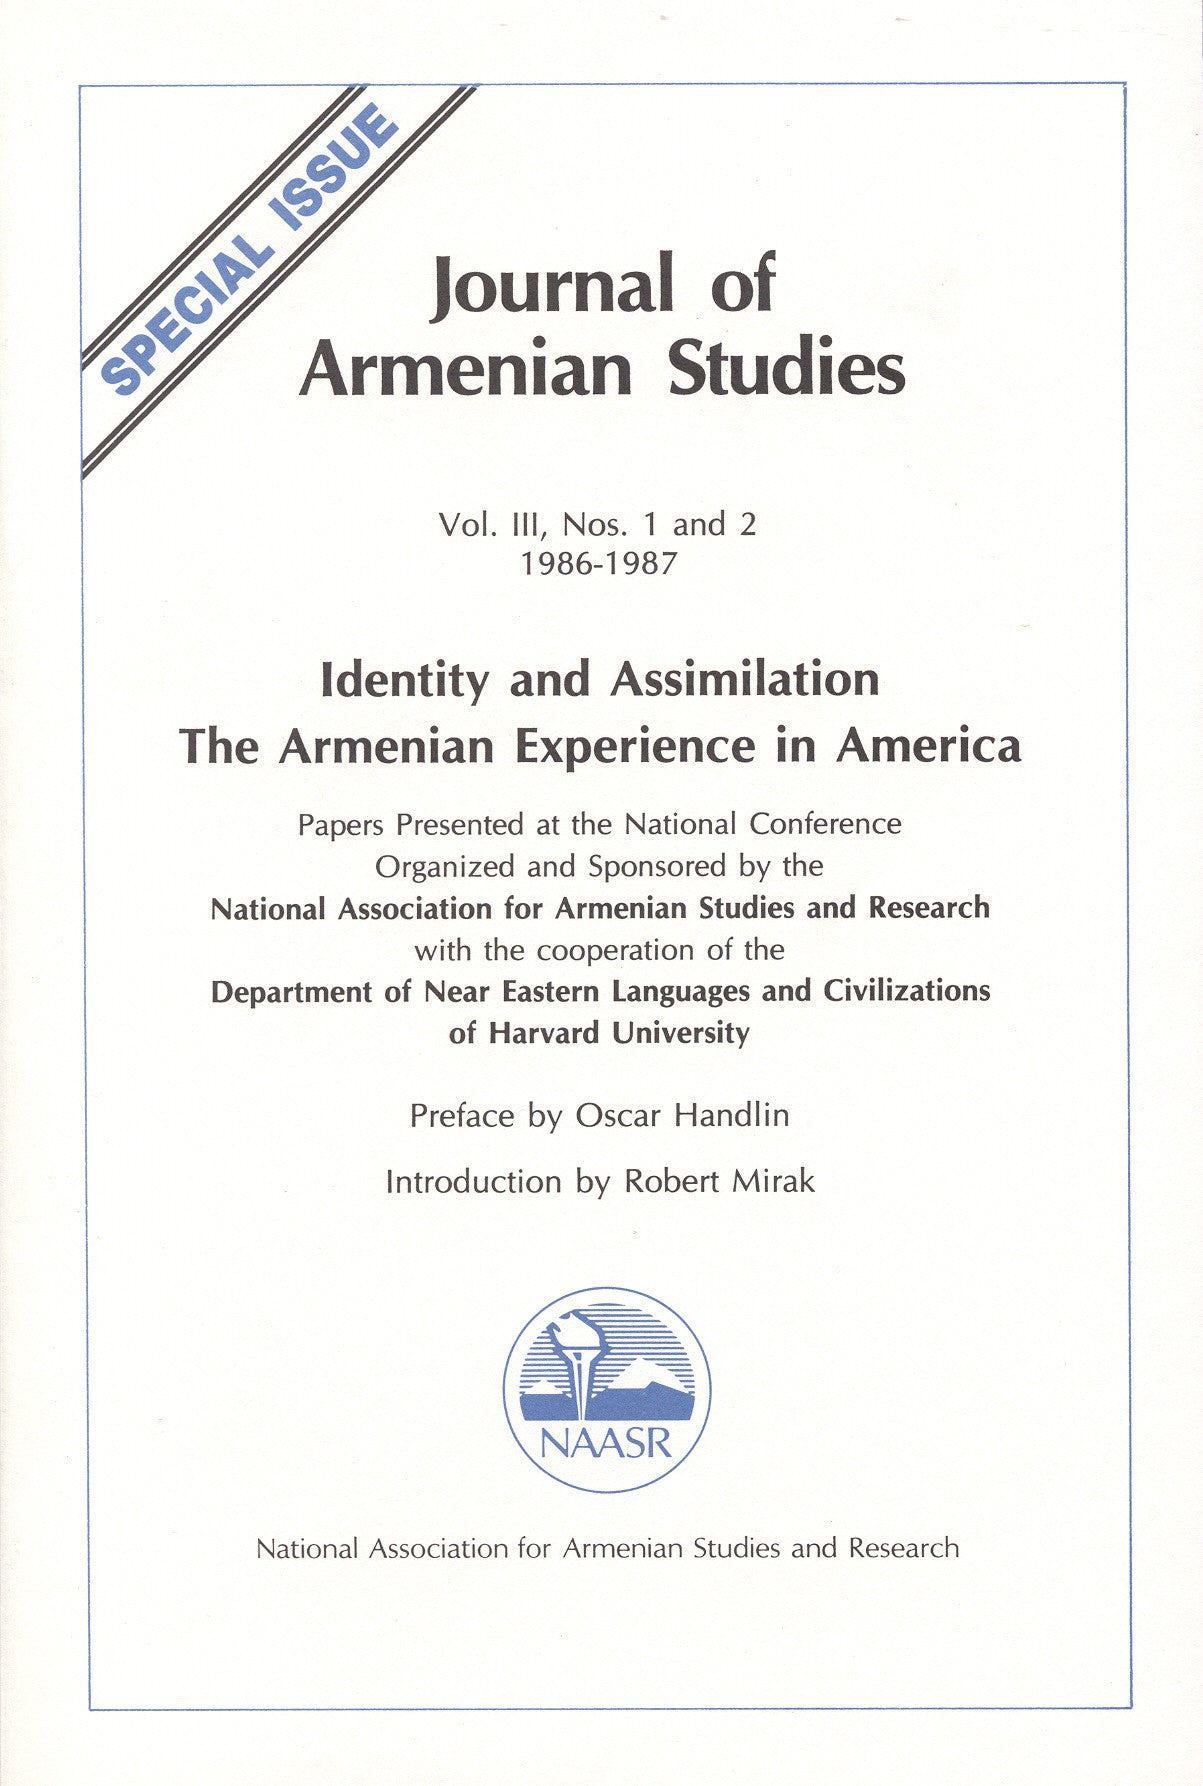 JOURNAL OF ARMENIAN STUDIES: Volume III, Numbers 1 & 2: 1986-1987 Identity and Assimilation: The Armenian Experience in America